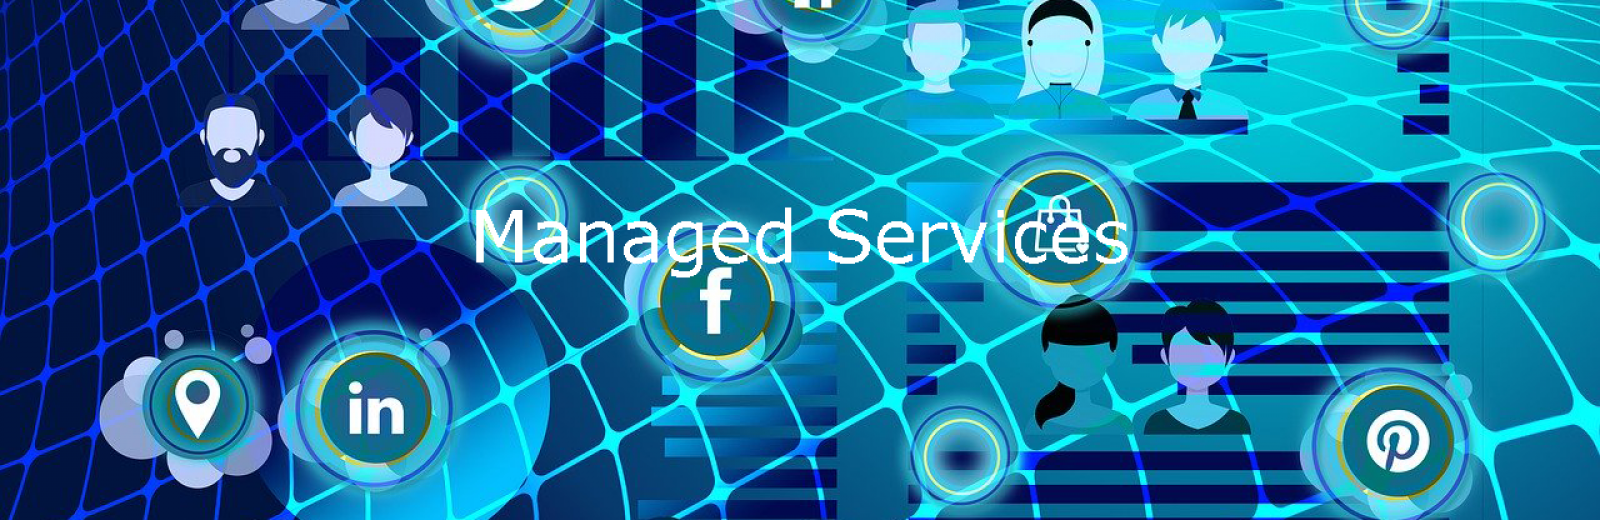 Manged Services